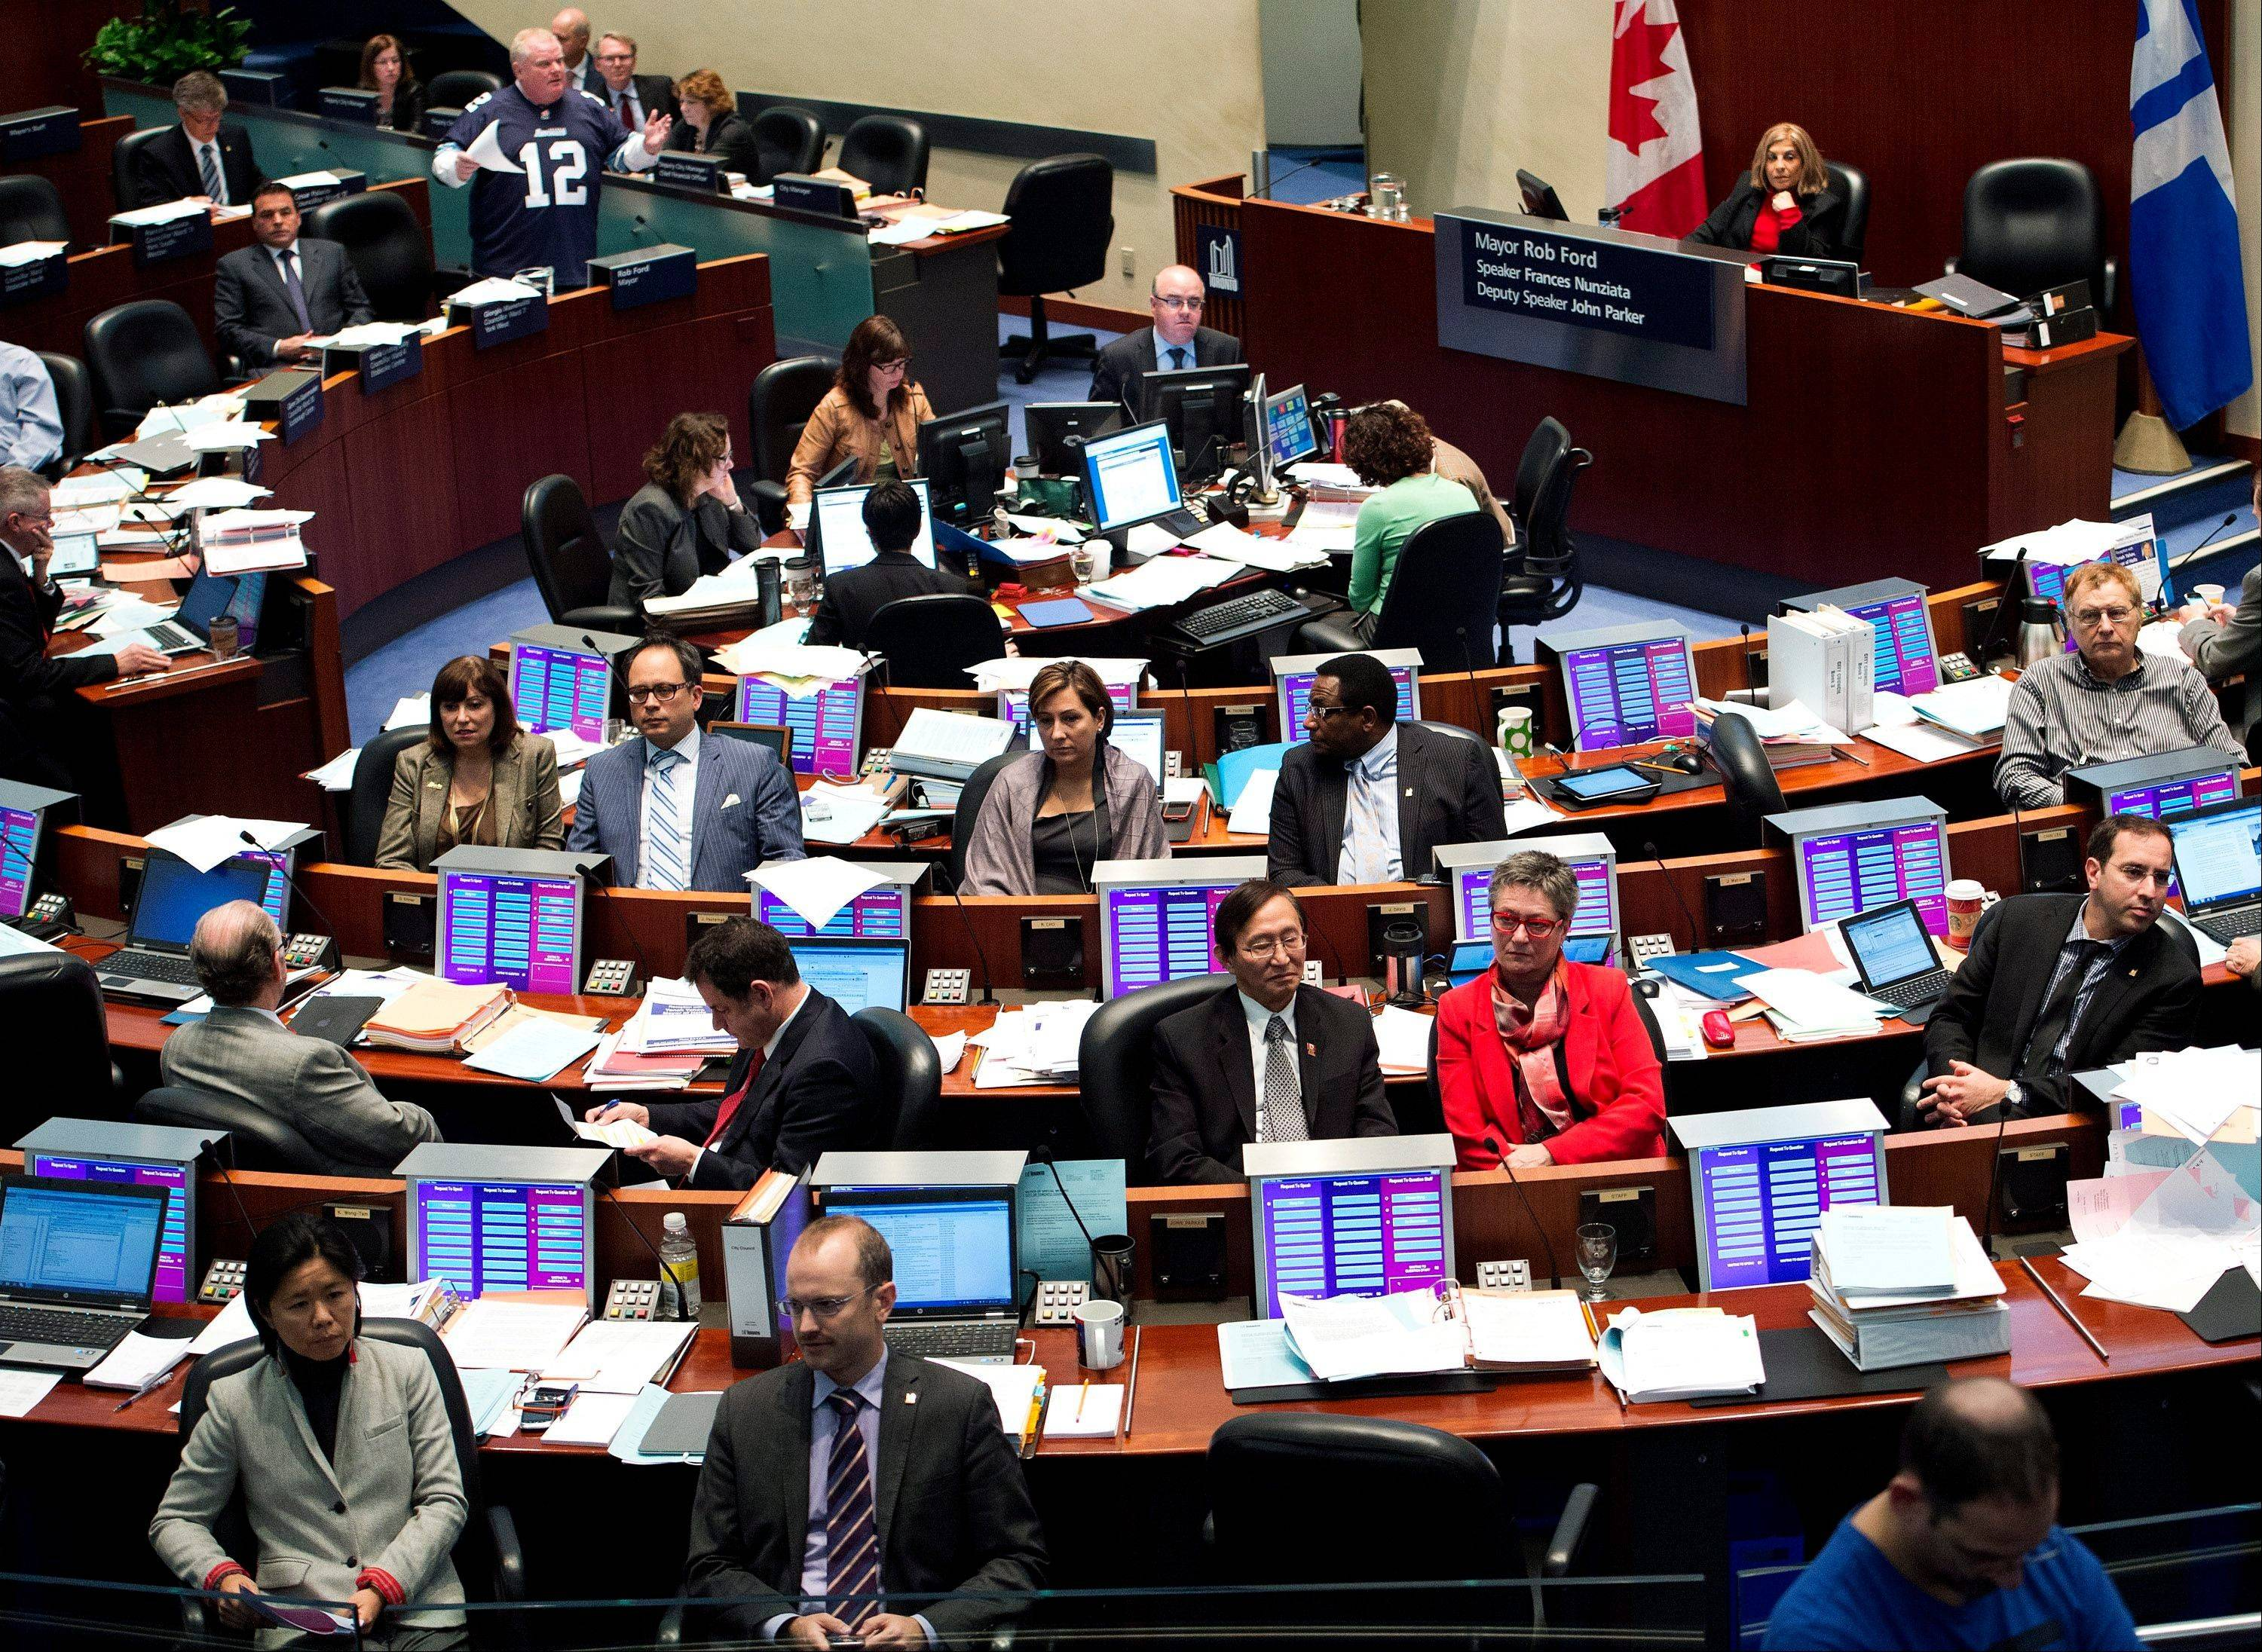 City Council members turn their backs in protest as Toronto Mayor Rob Ford, standing top left, addresses the council during a session at City Hall in Toronto on Thursday, Nov. 14, 2013.